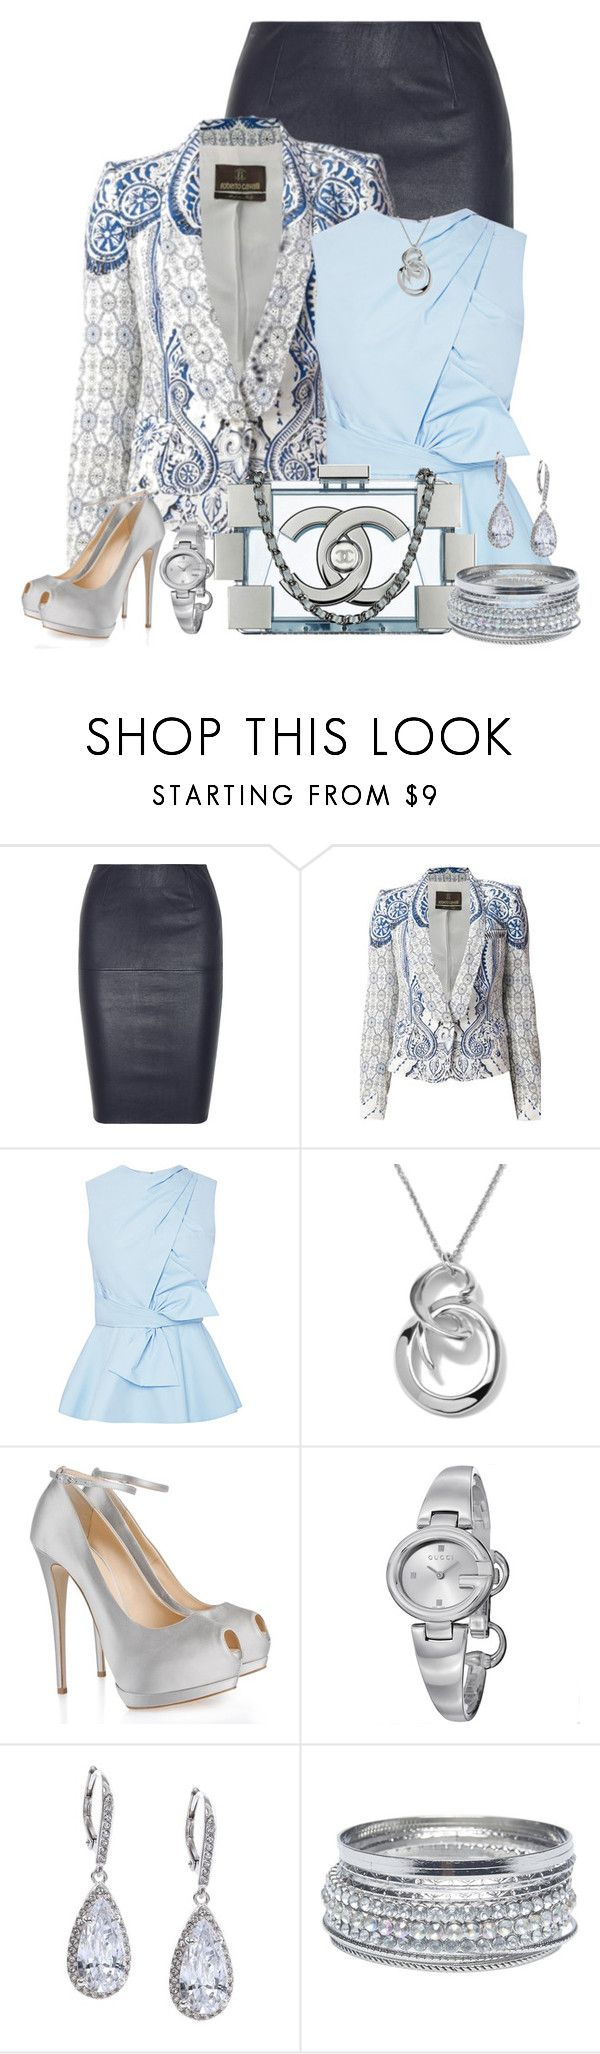 """""""Silver & Blue"""" by stay813 ❤ liked on Polyvore featuring By Malene Birger, Roberto Cavalli, Prabal Gurung, Ippolita, Giuseppe Zanotti, Gucci, Judith Jack, Chanel and Wet Seal"""